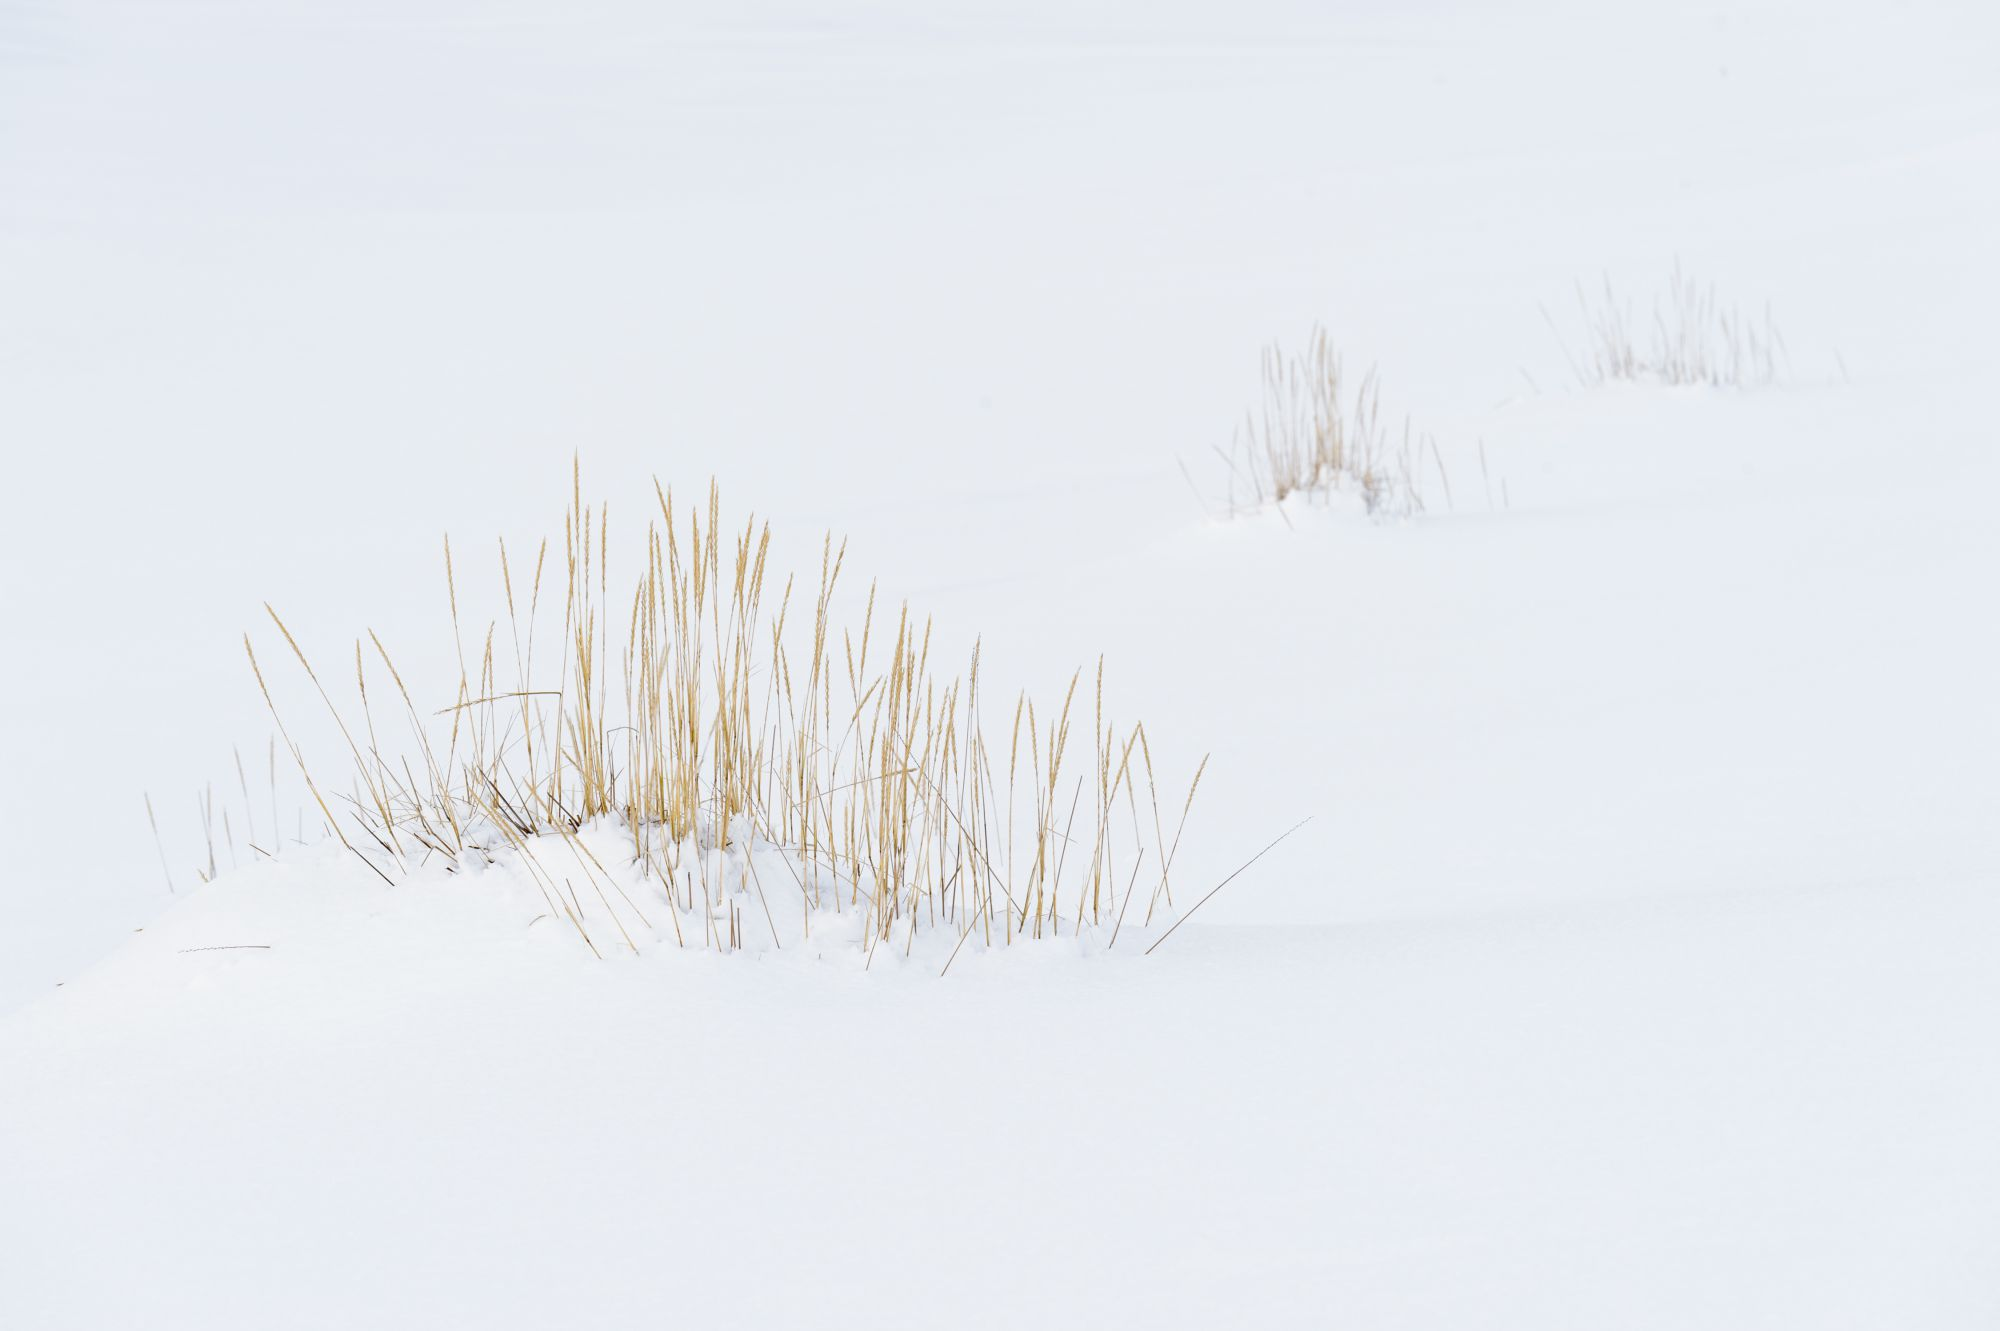 Sea lyme grass in snow